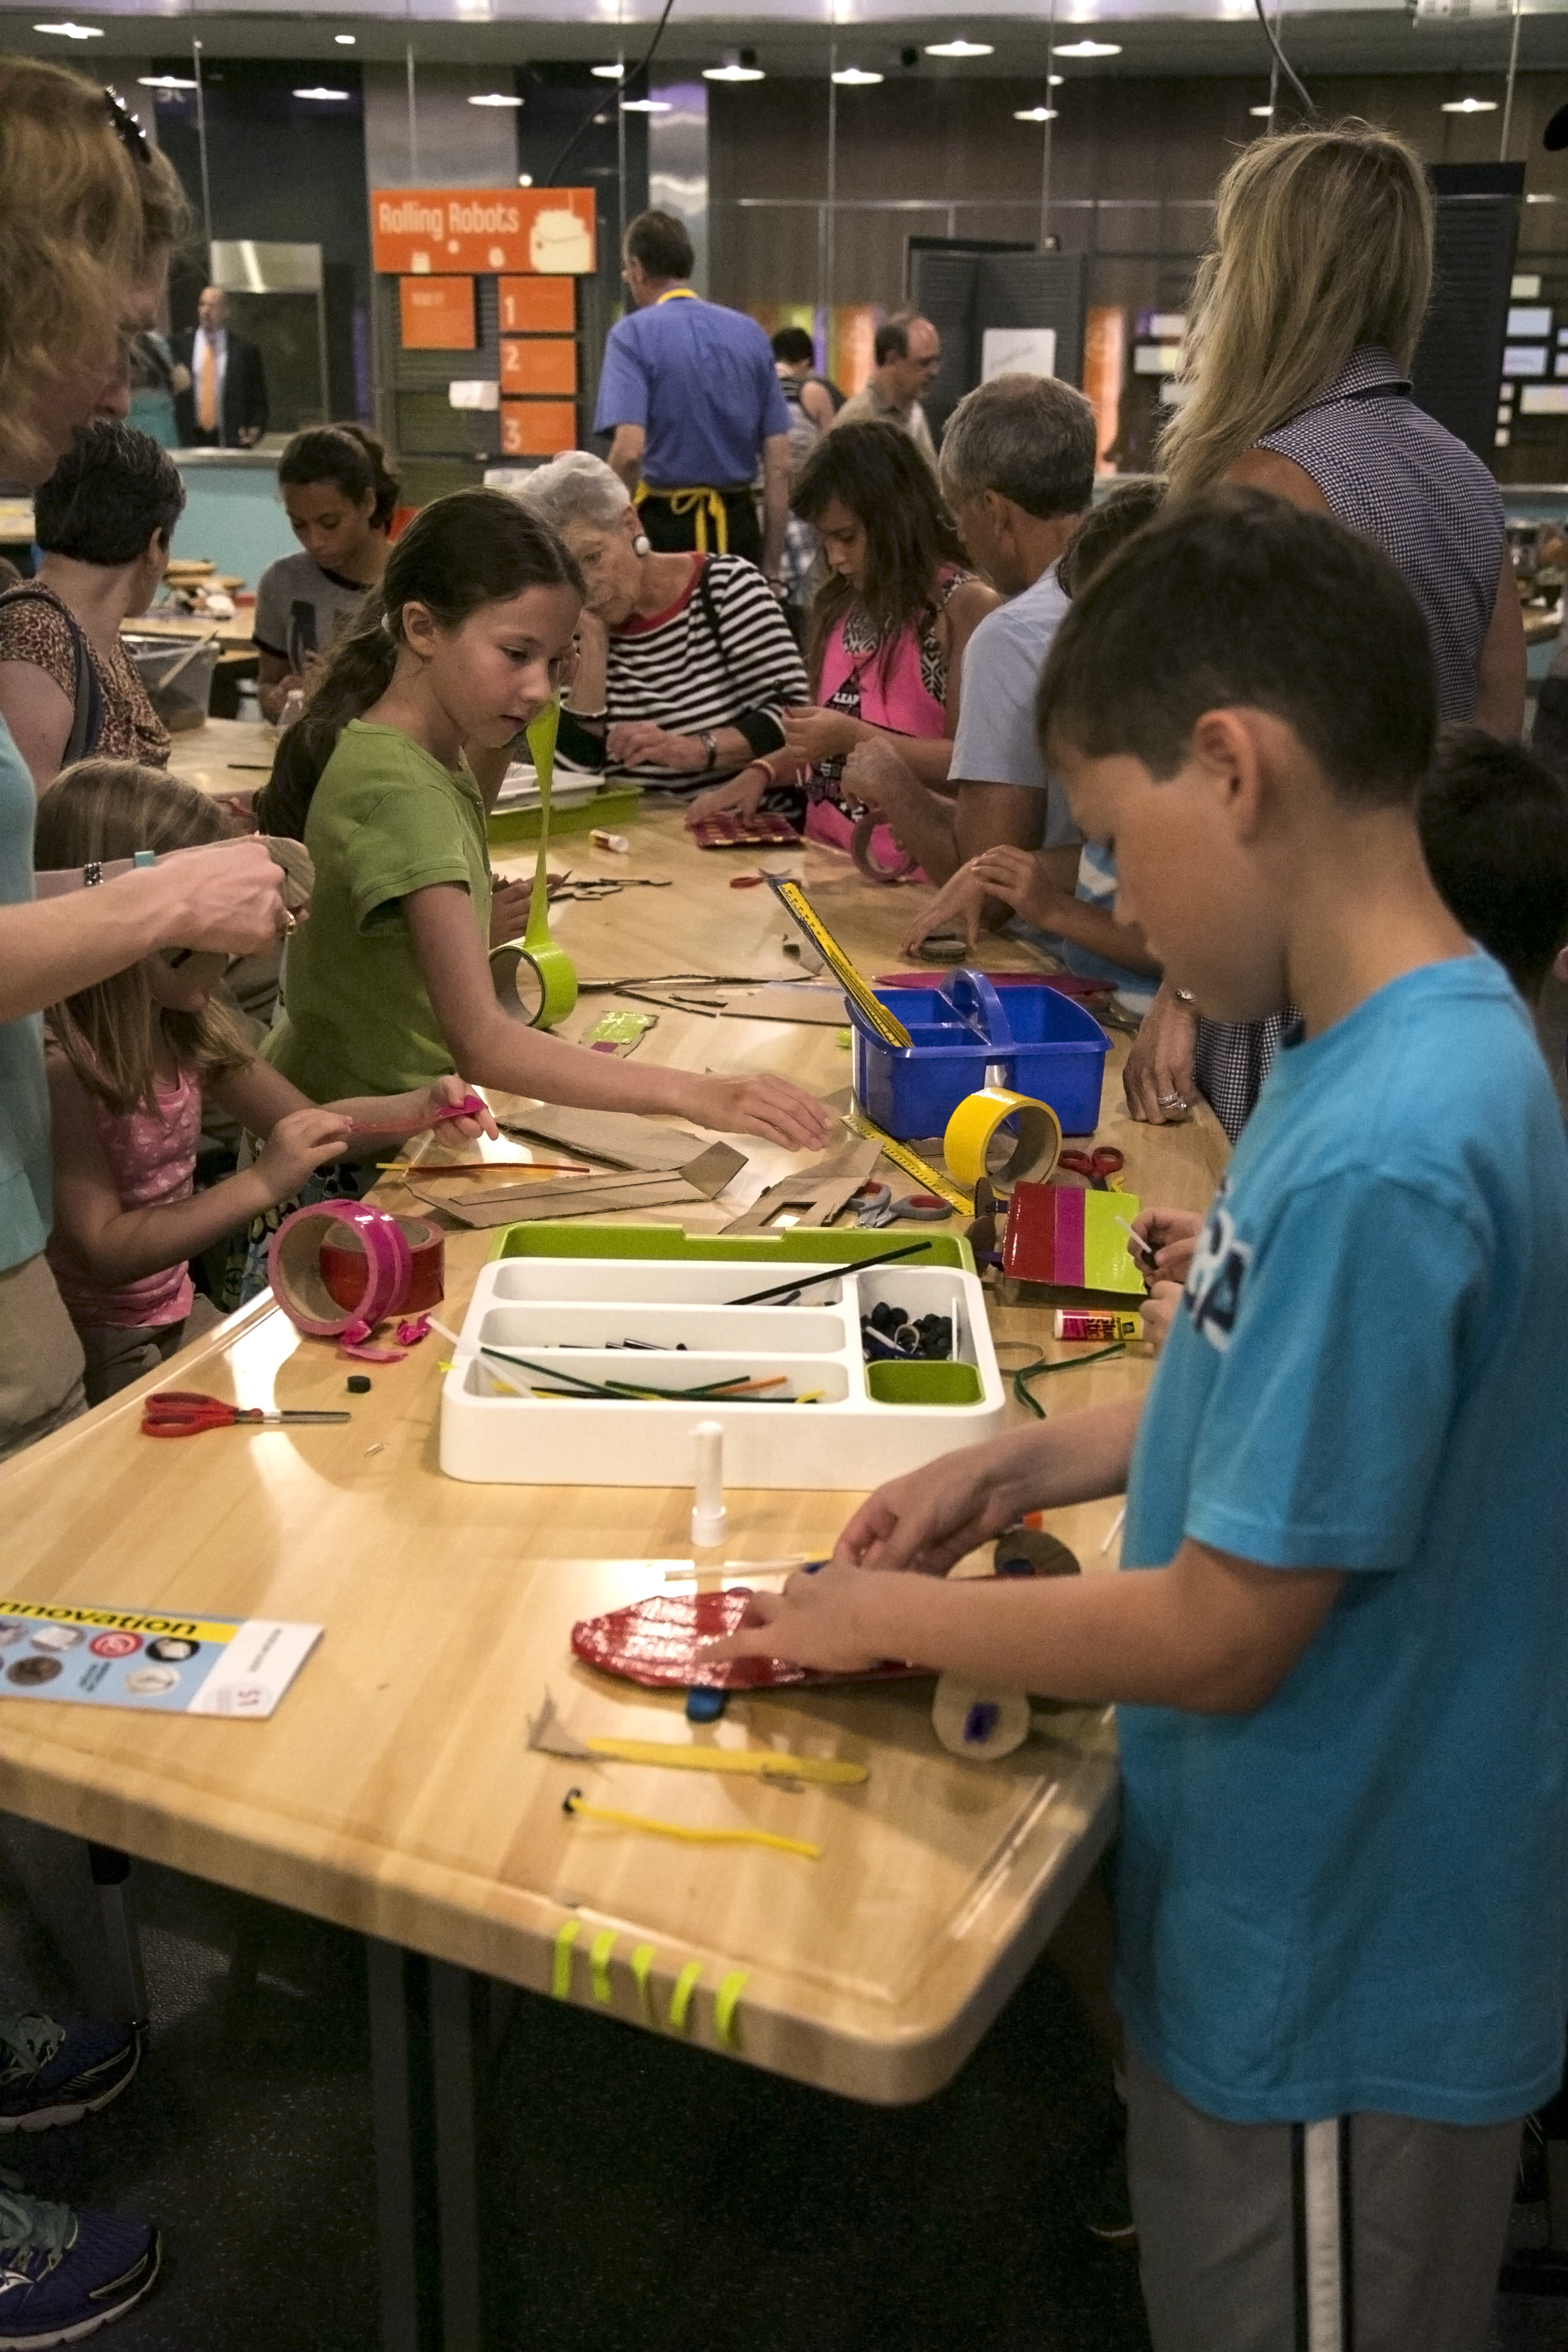 A crowd of about 30 children and adults work on activities in SparkLab